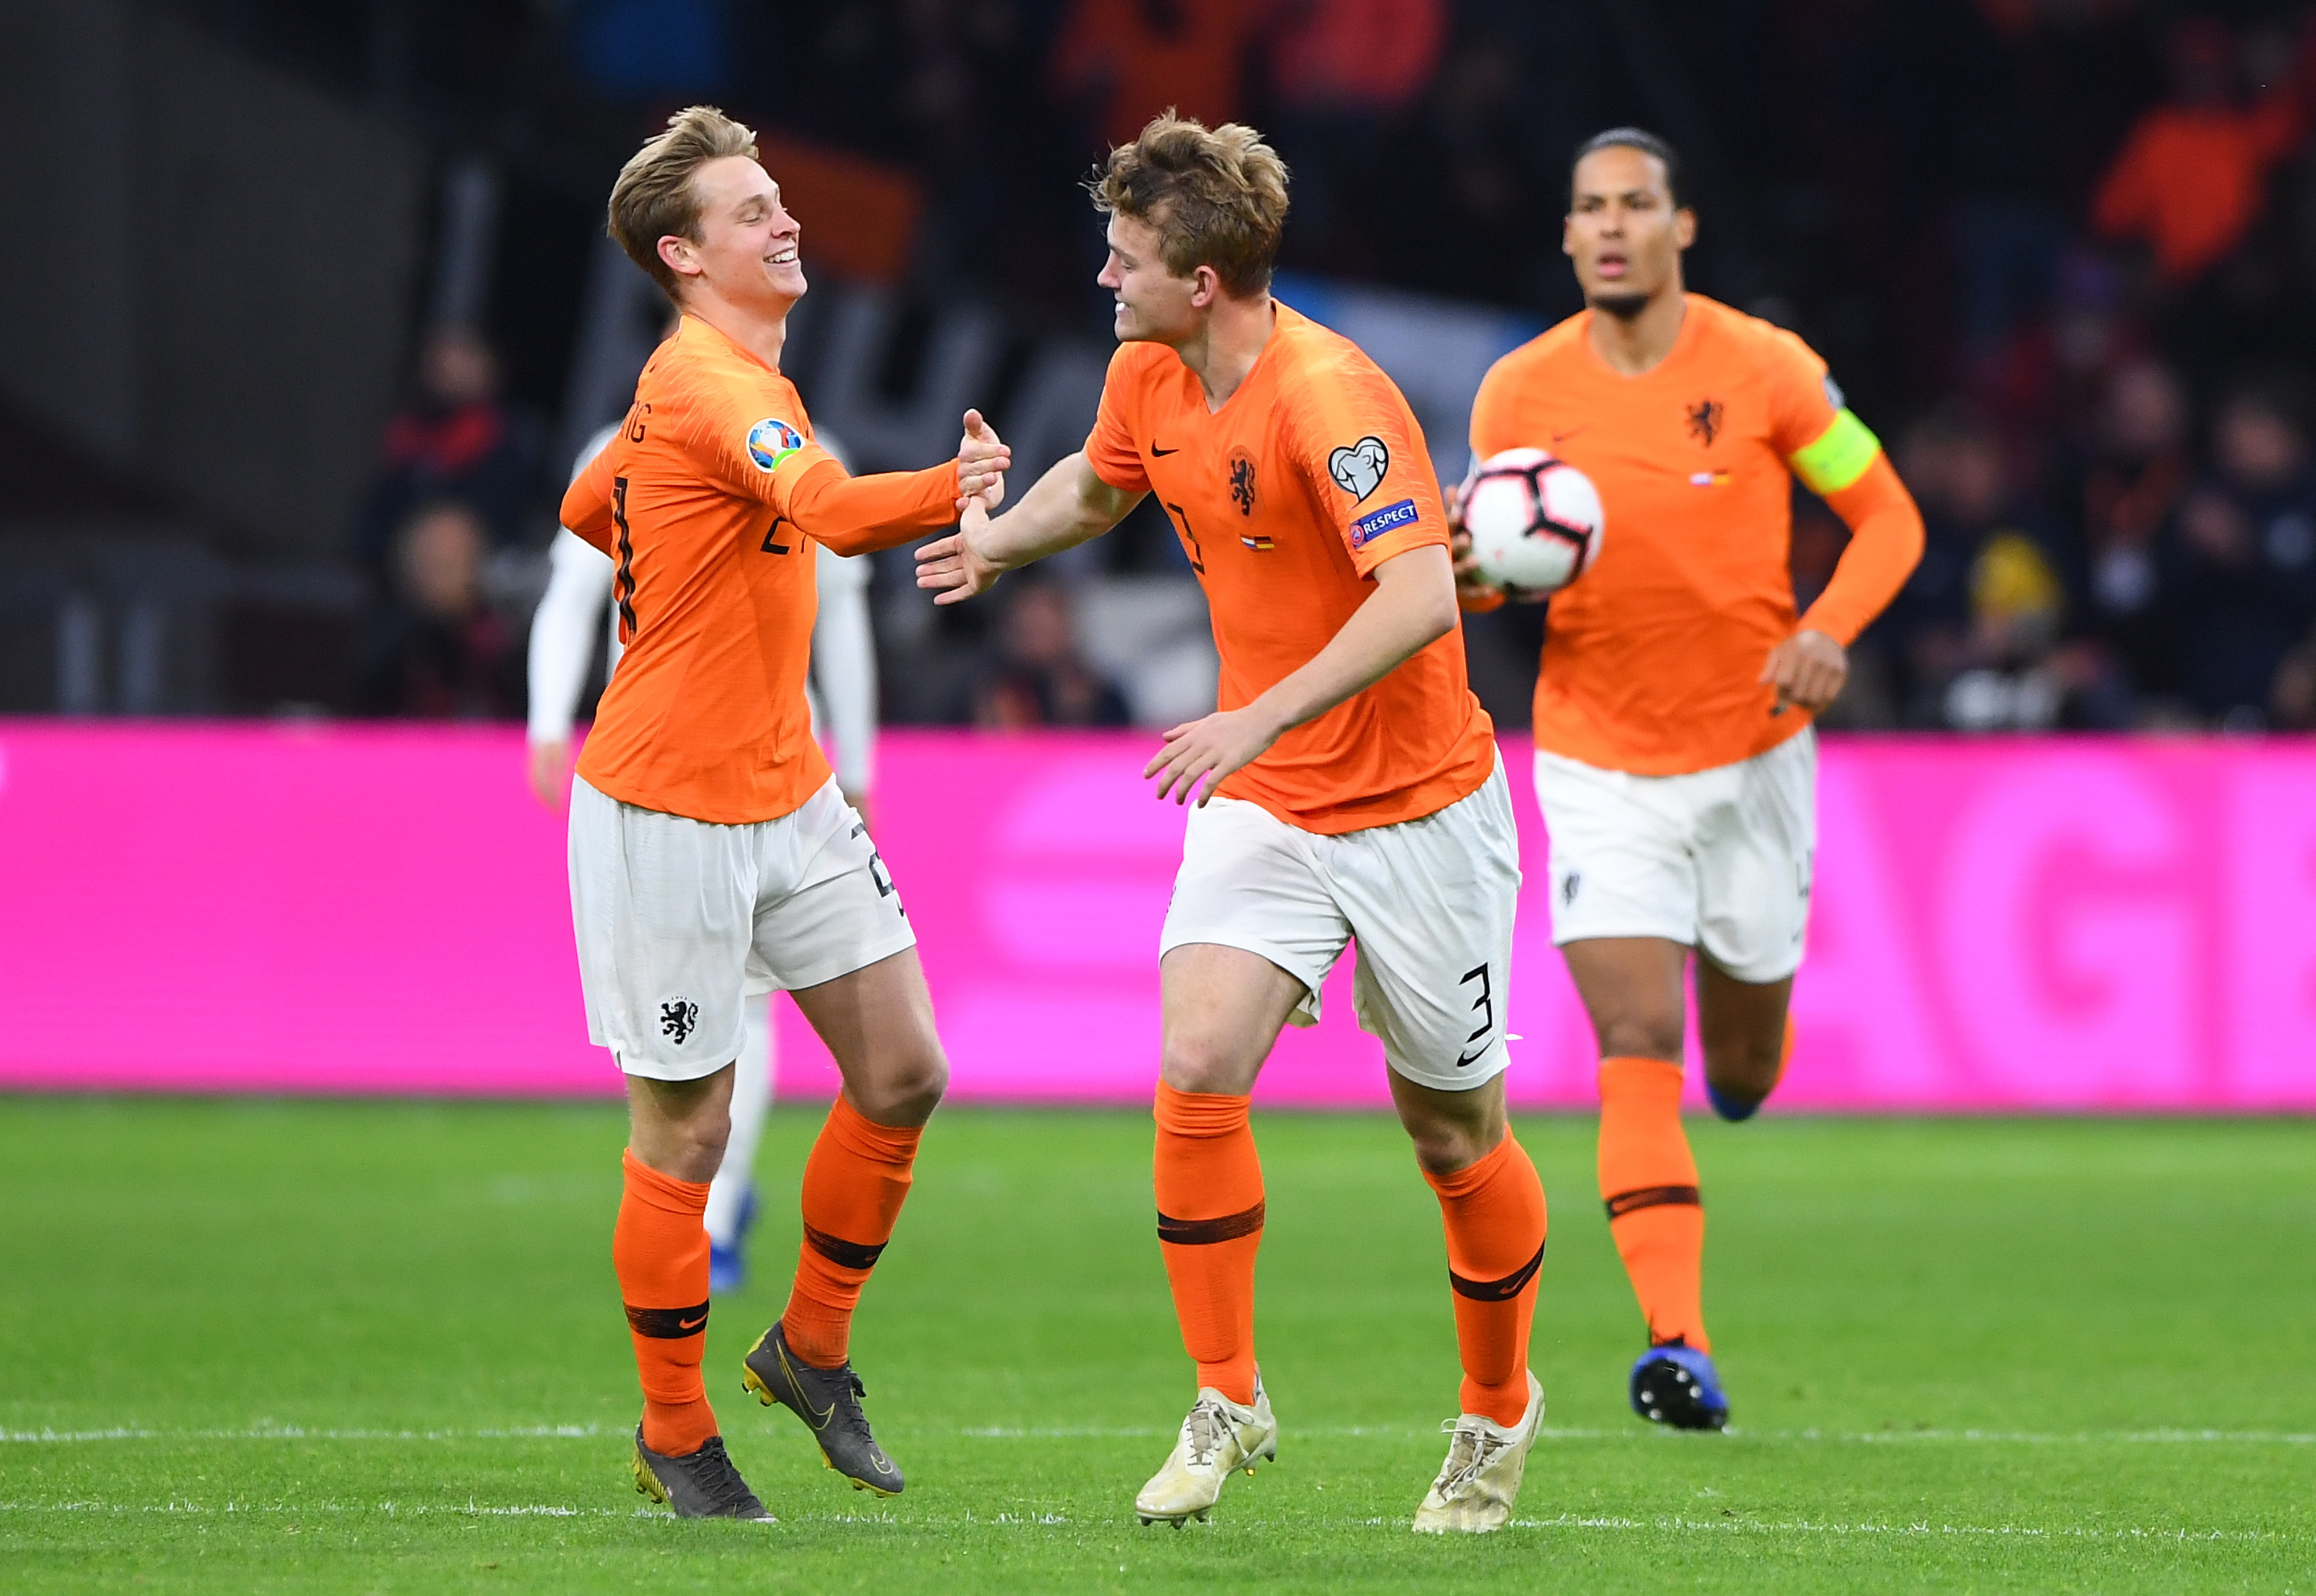 De Jong and De Ligt could be together for a long time. Image: PA Images